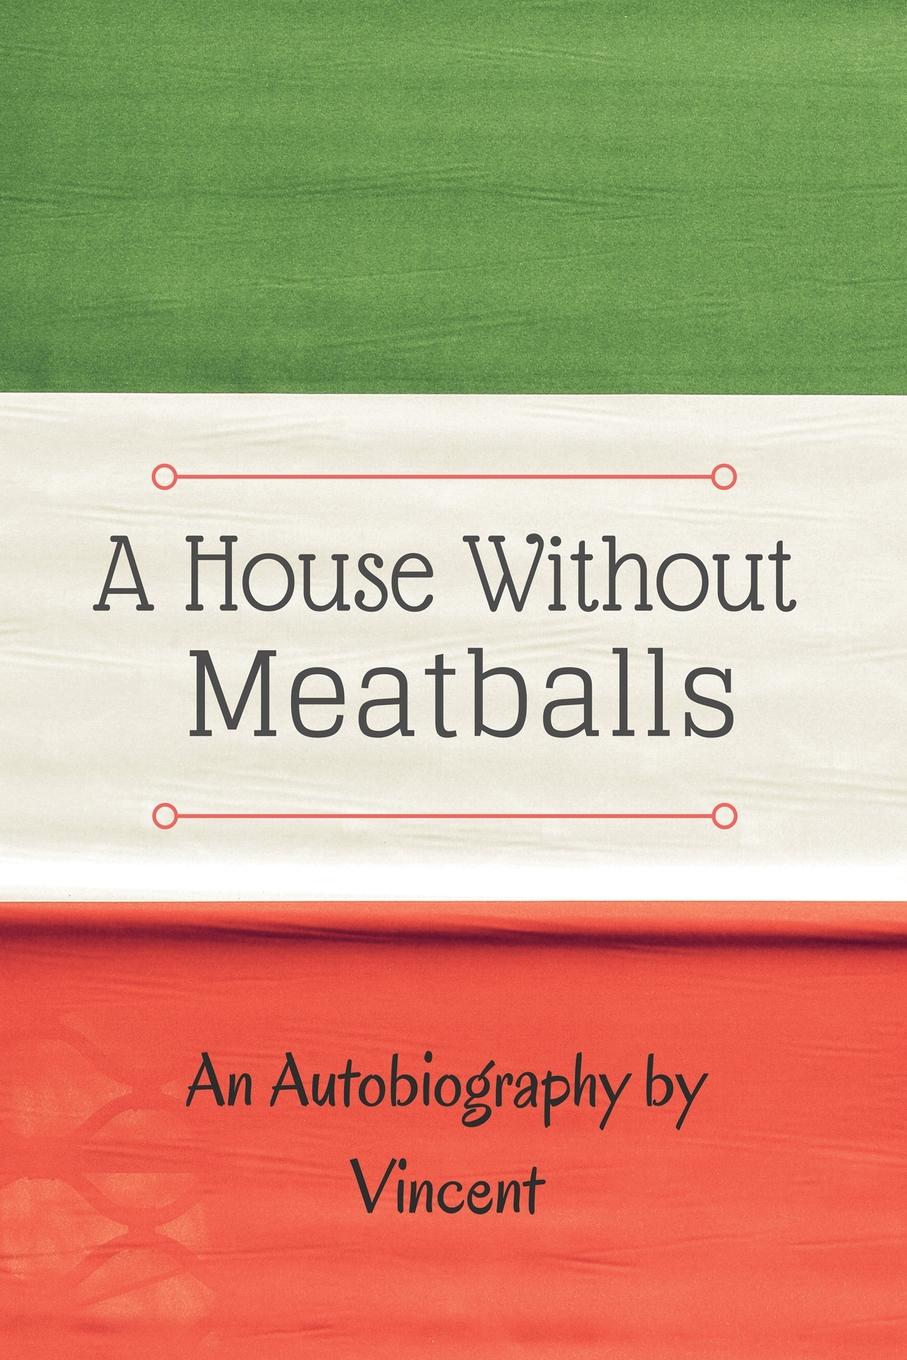 Vincent Herr-Romano A House Without Meatballs. A Biography searching for arguments